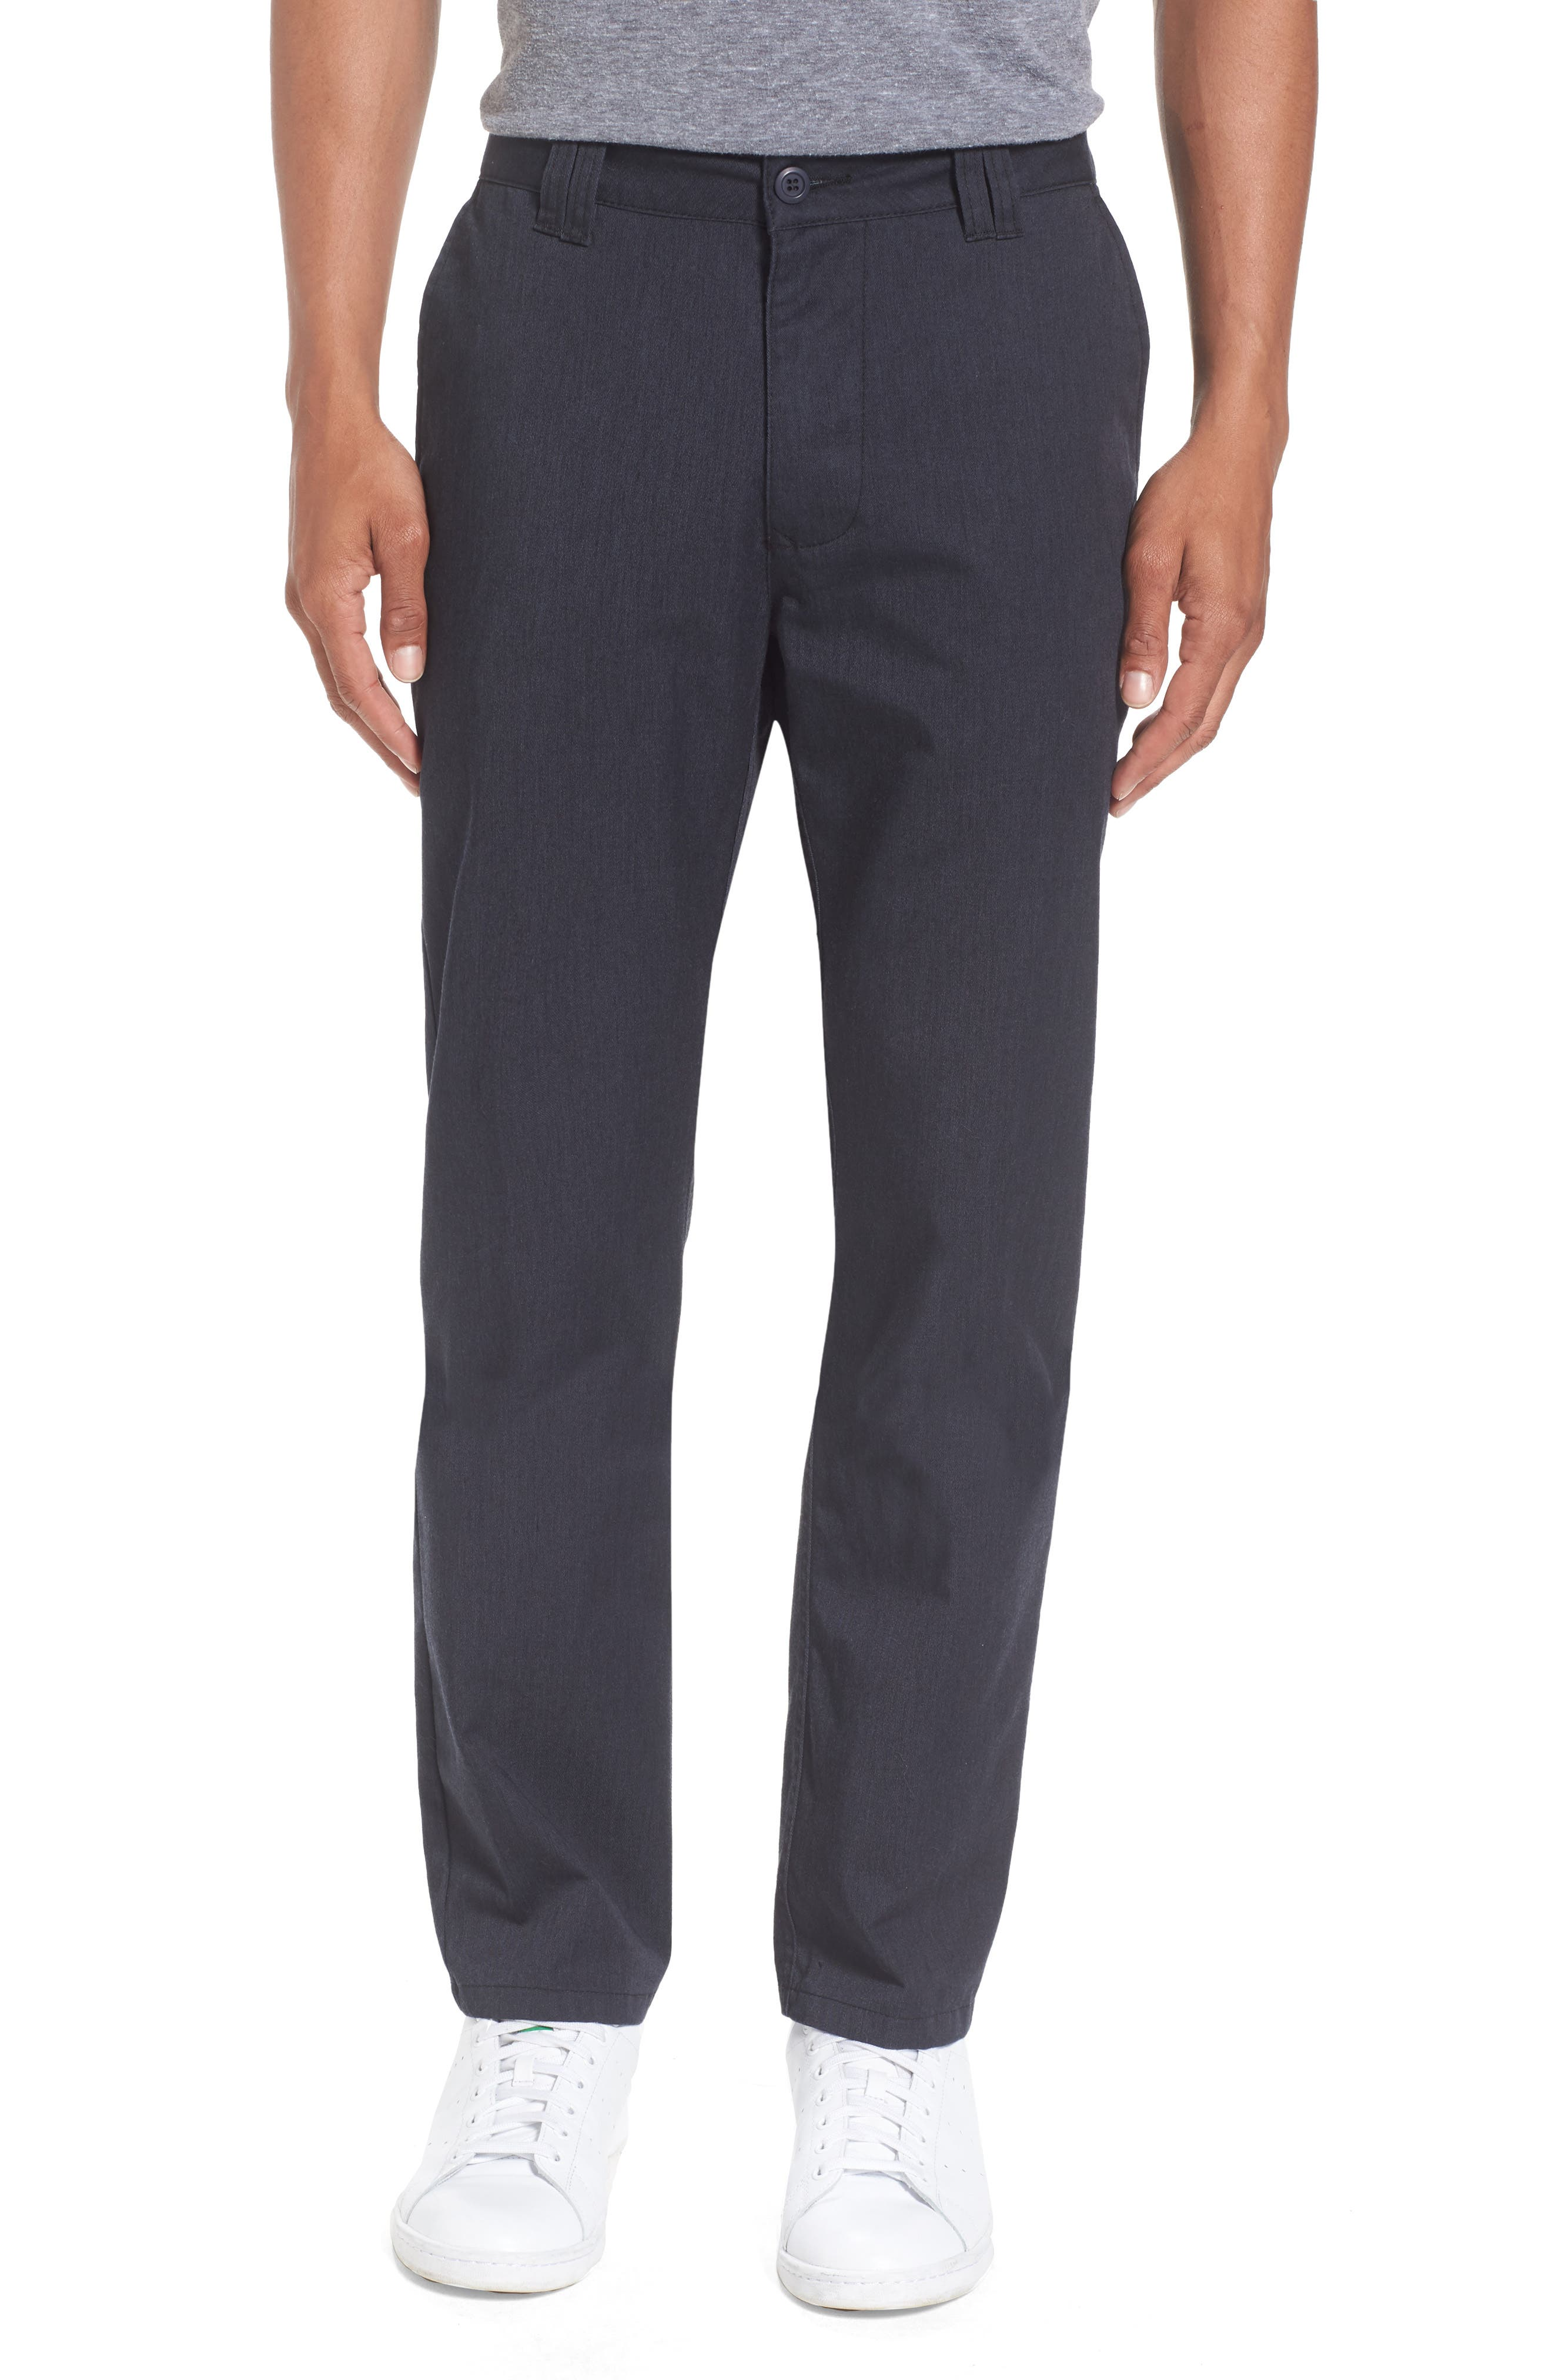 Contact Straight Leg Pants,                         Main,                         color, Navy Heather